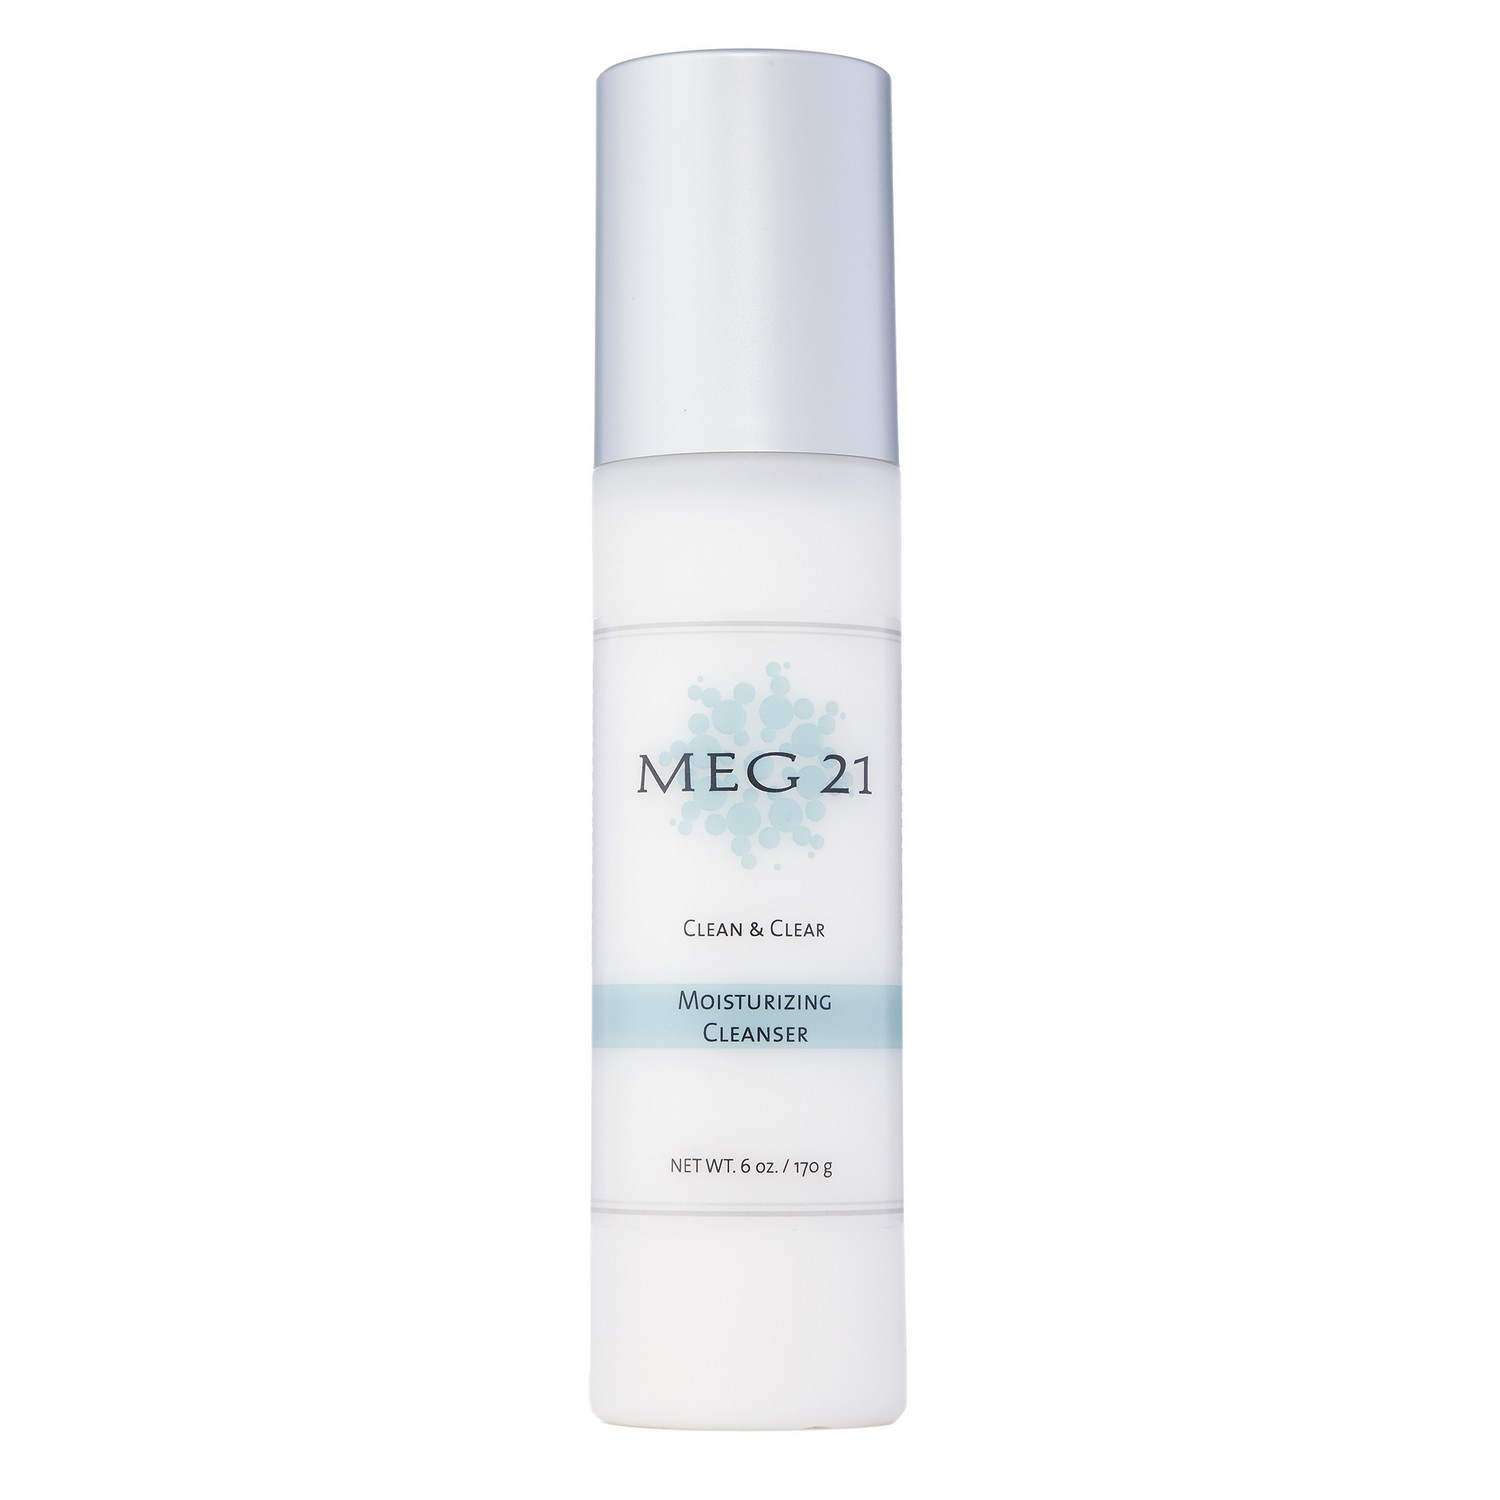 MEG 21 CLEAN & CLEAR MOISTURIZING CLEANSER (6.0 oz / 170 g)